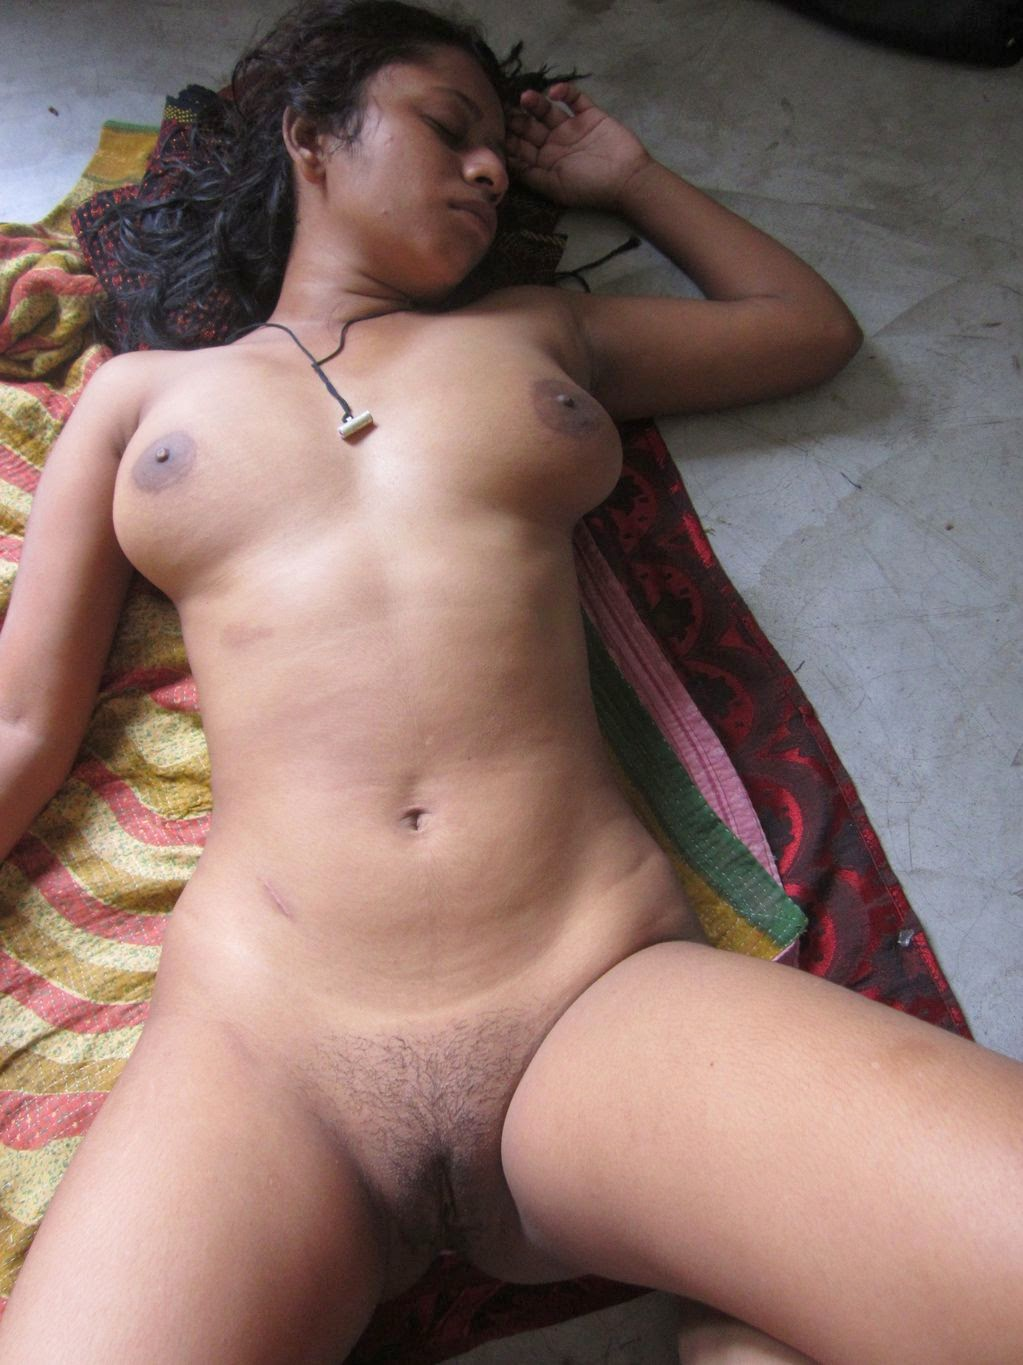 zim black naked girls photo